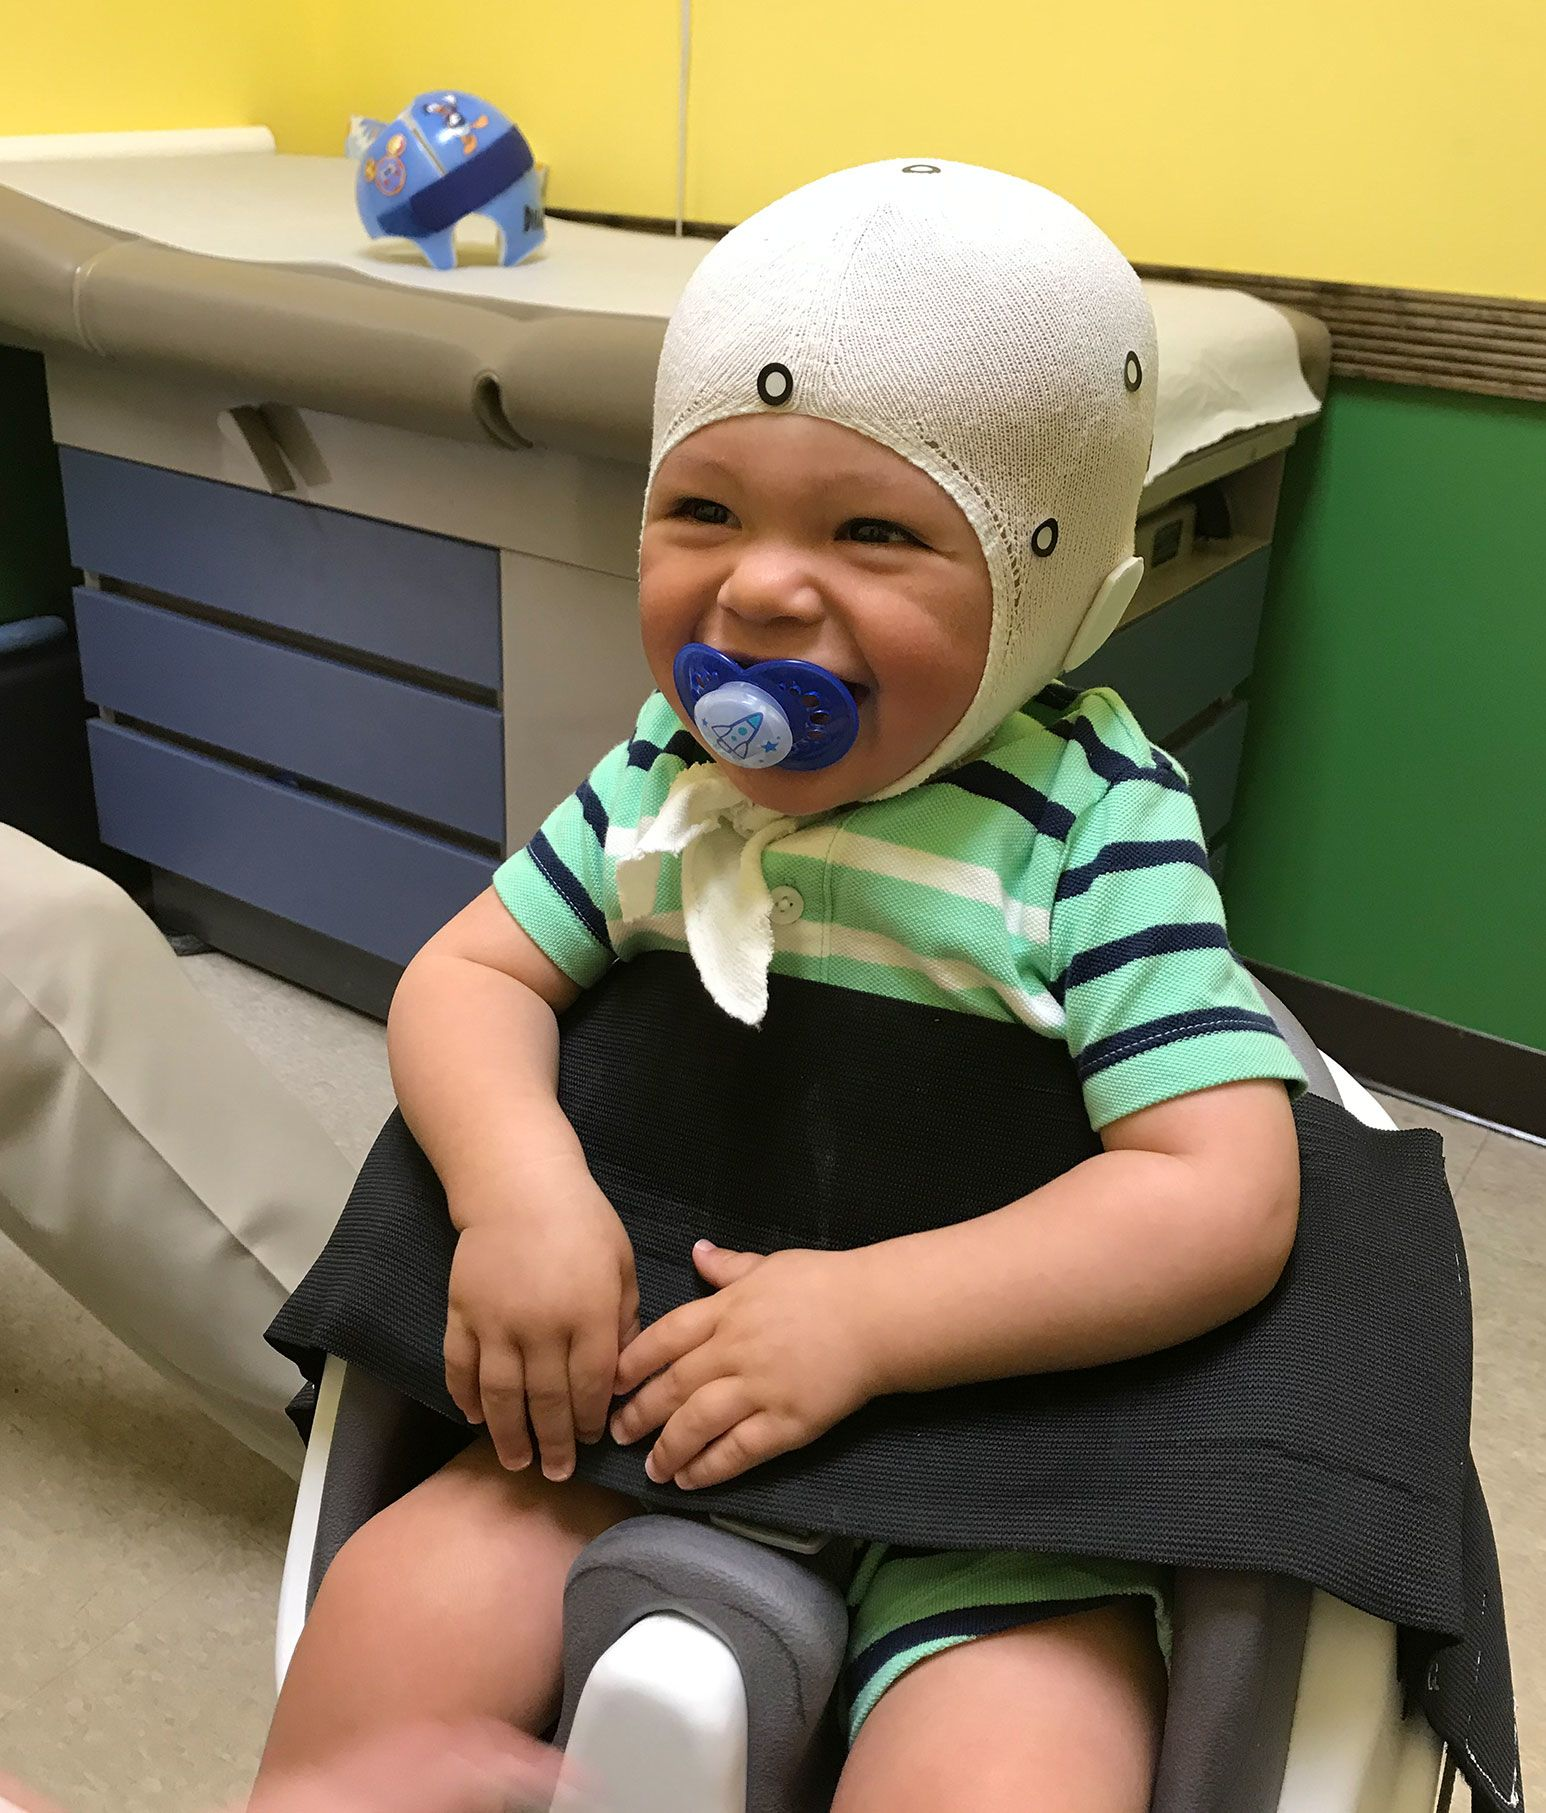 A baby sits on a white chair with a black strap over him. The baby is smiling as he holds a pacifier in his mouth and wears a white cap over his head.